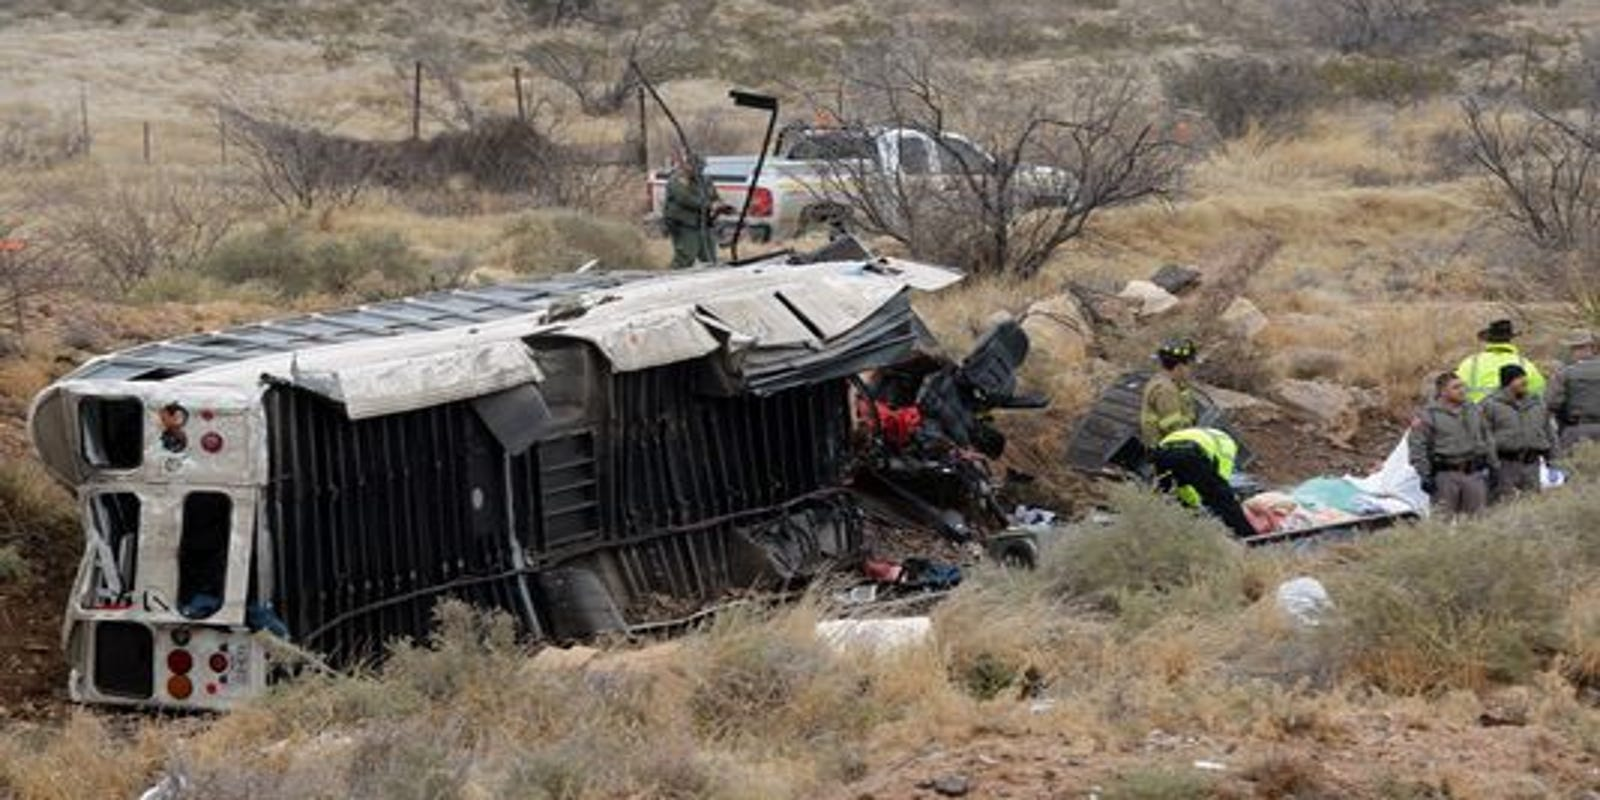 10 dead, 5 injured in West Texas prison bus crash